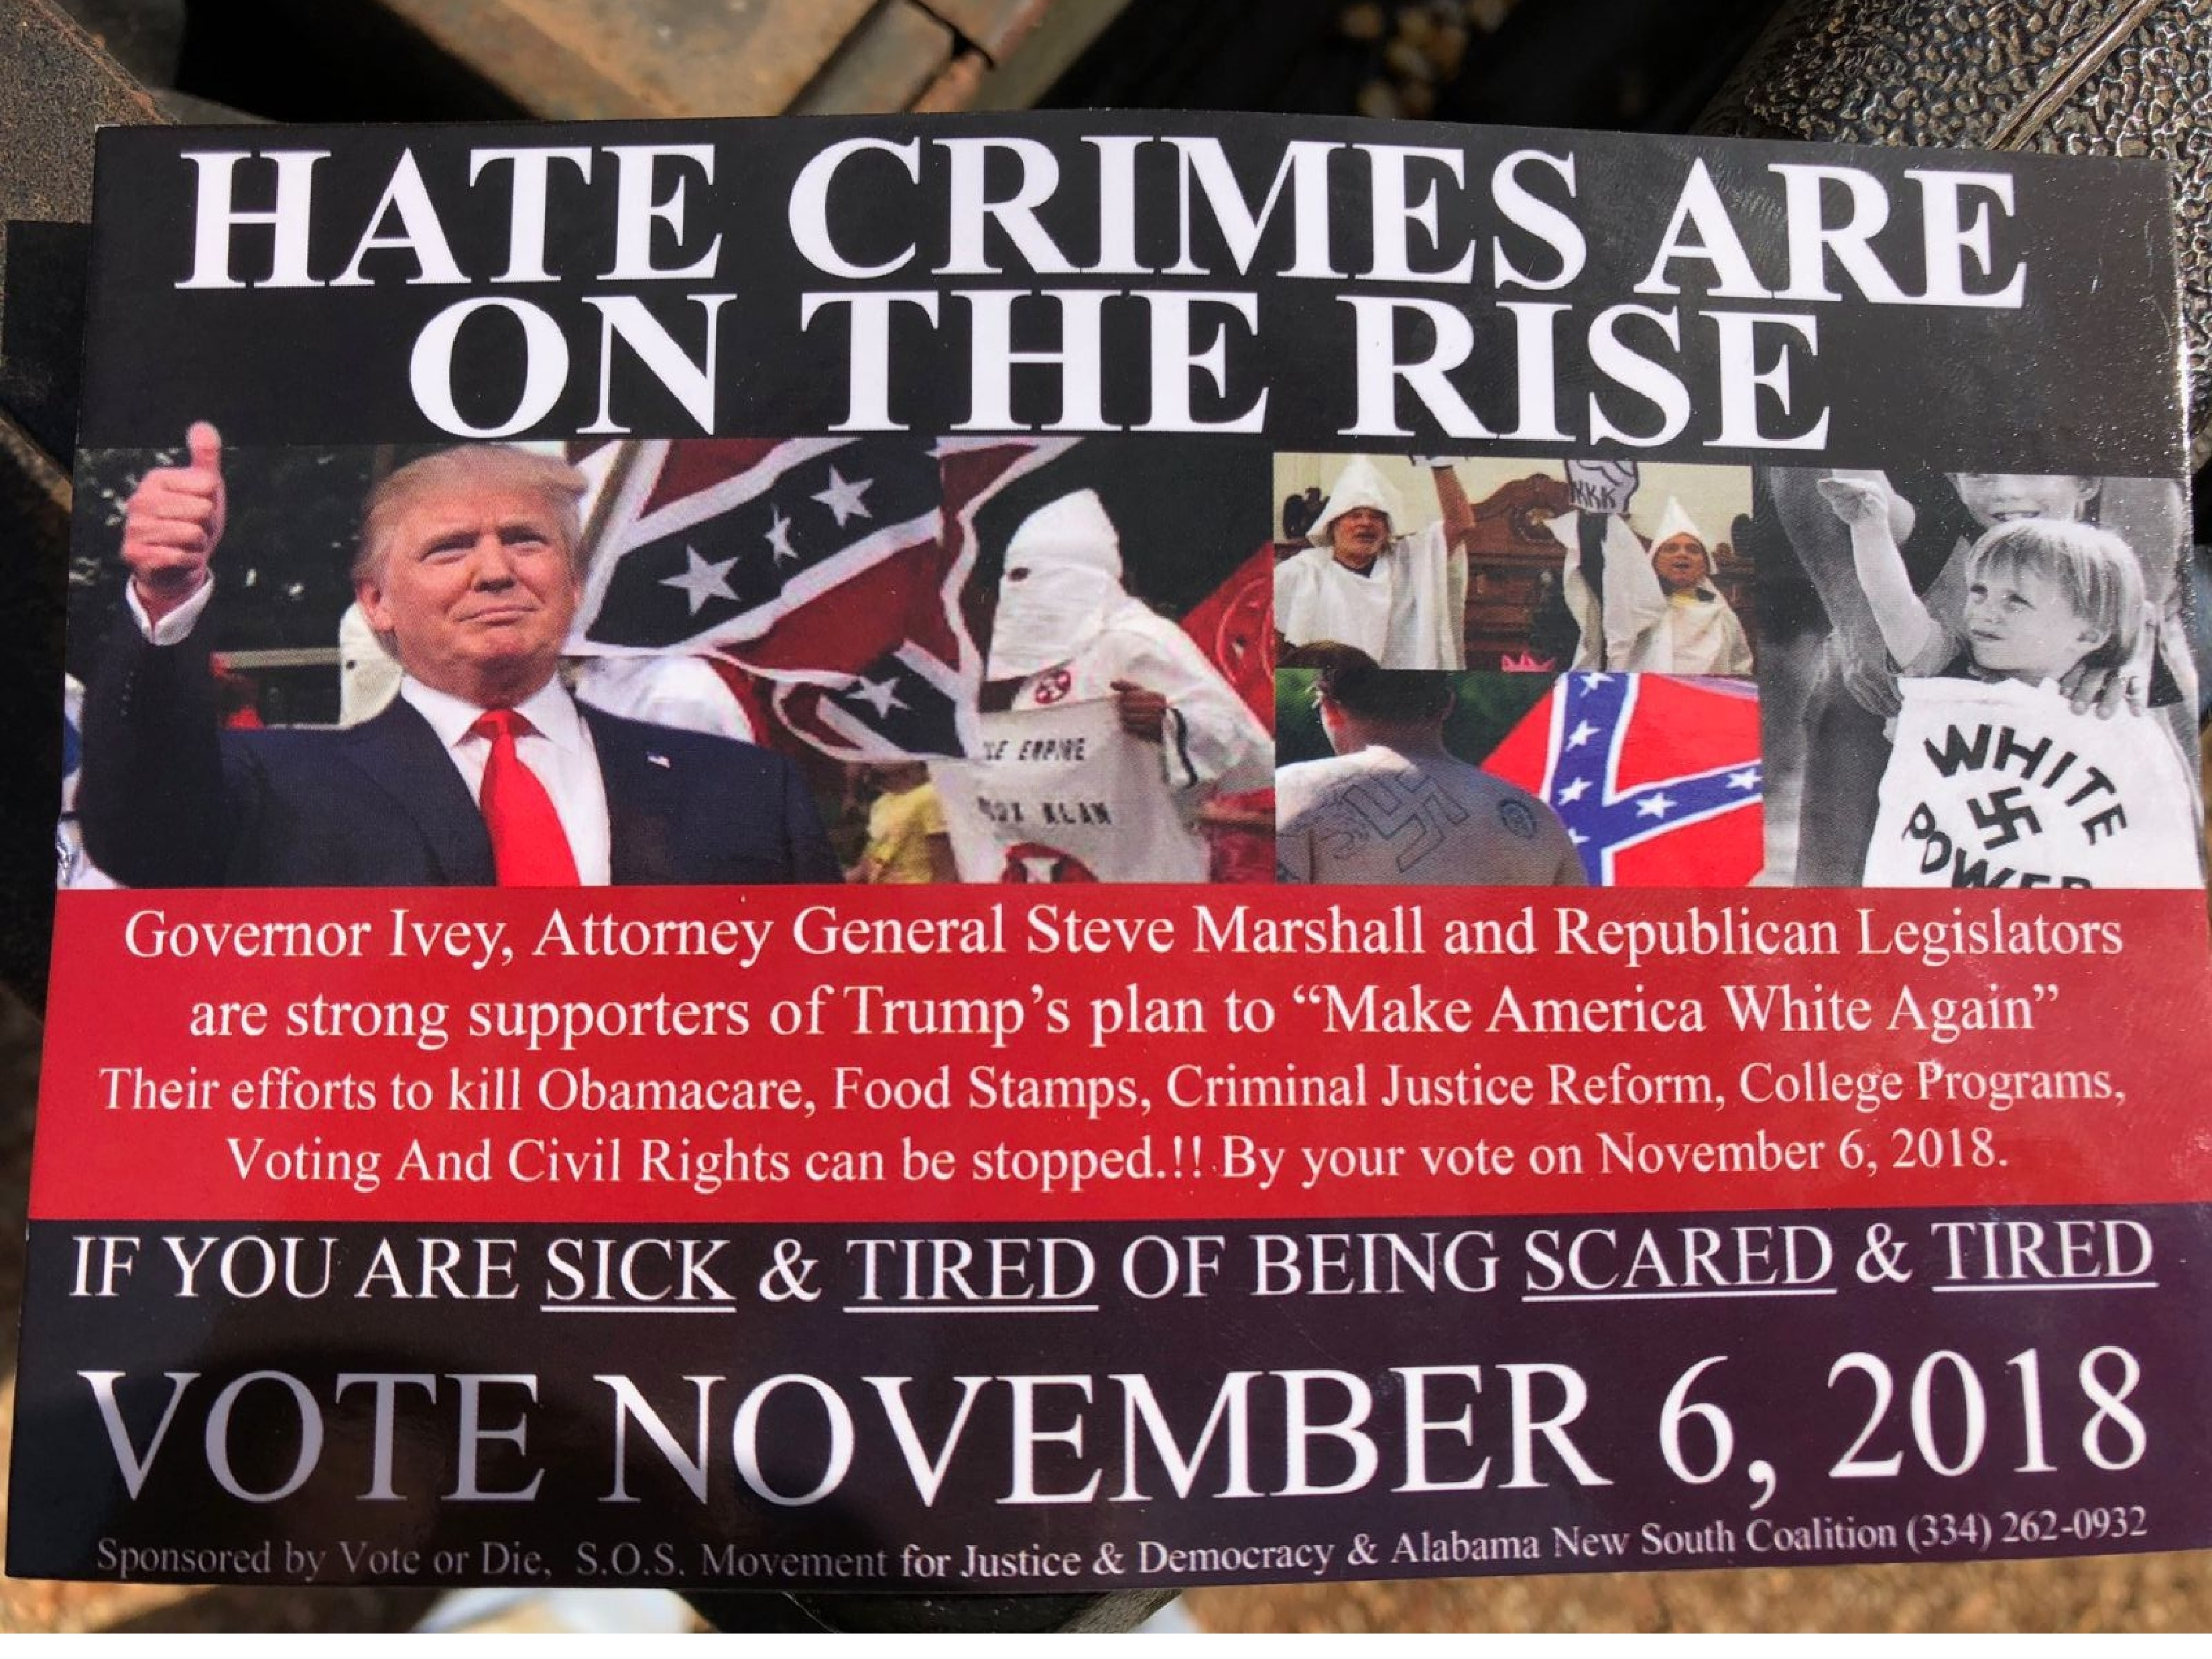 This flier featuring images of President Trump, the Ku Klux Klan and the Confederate flags has been injected into Alabama's election.